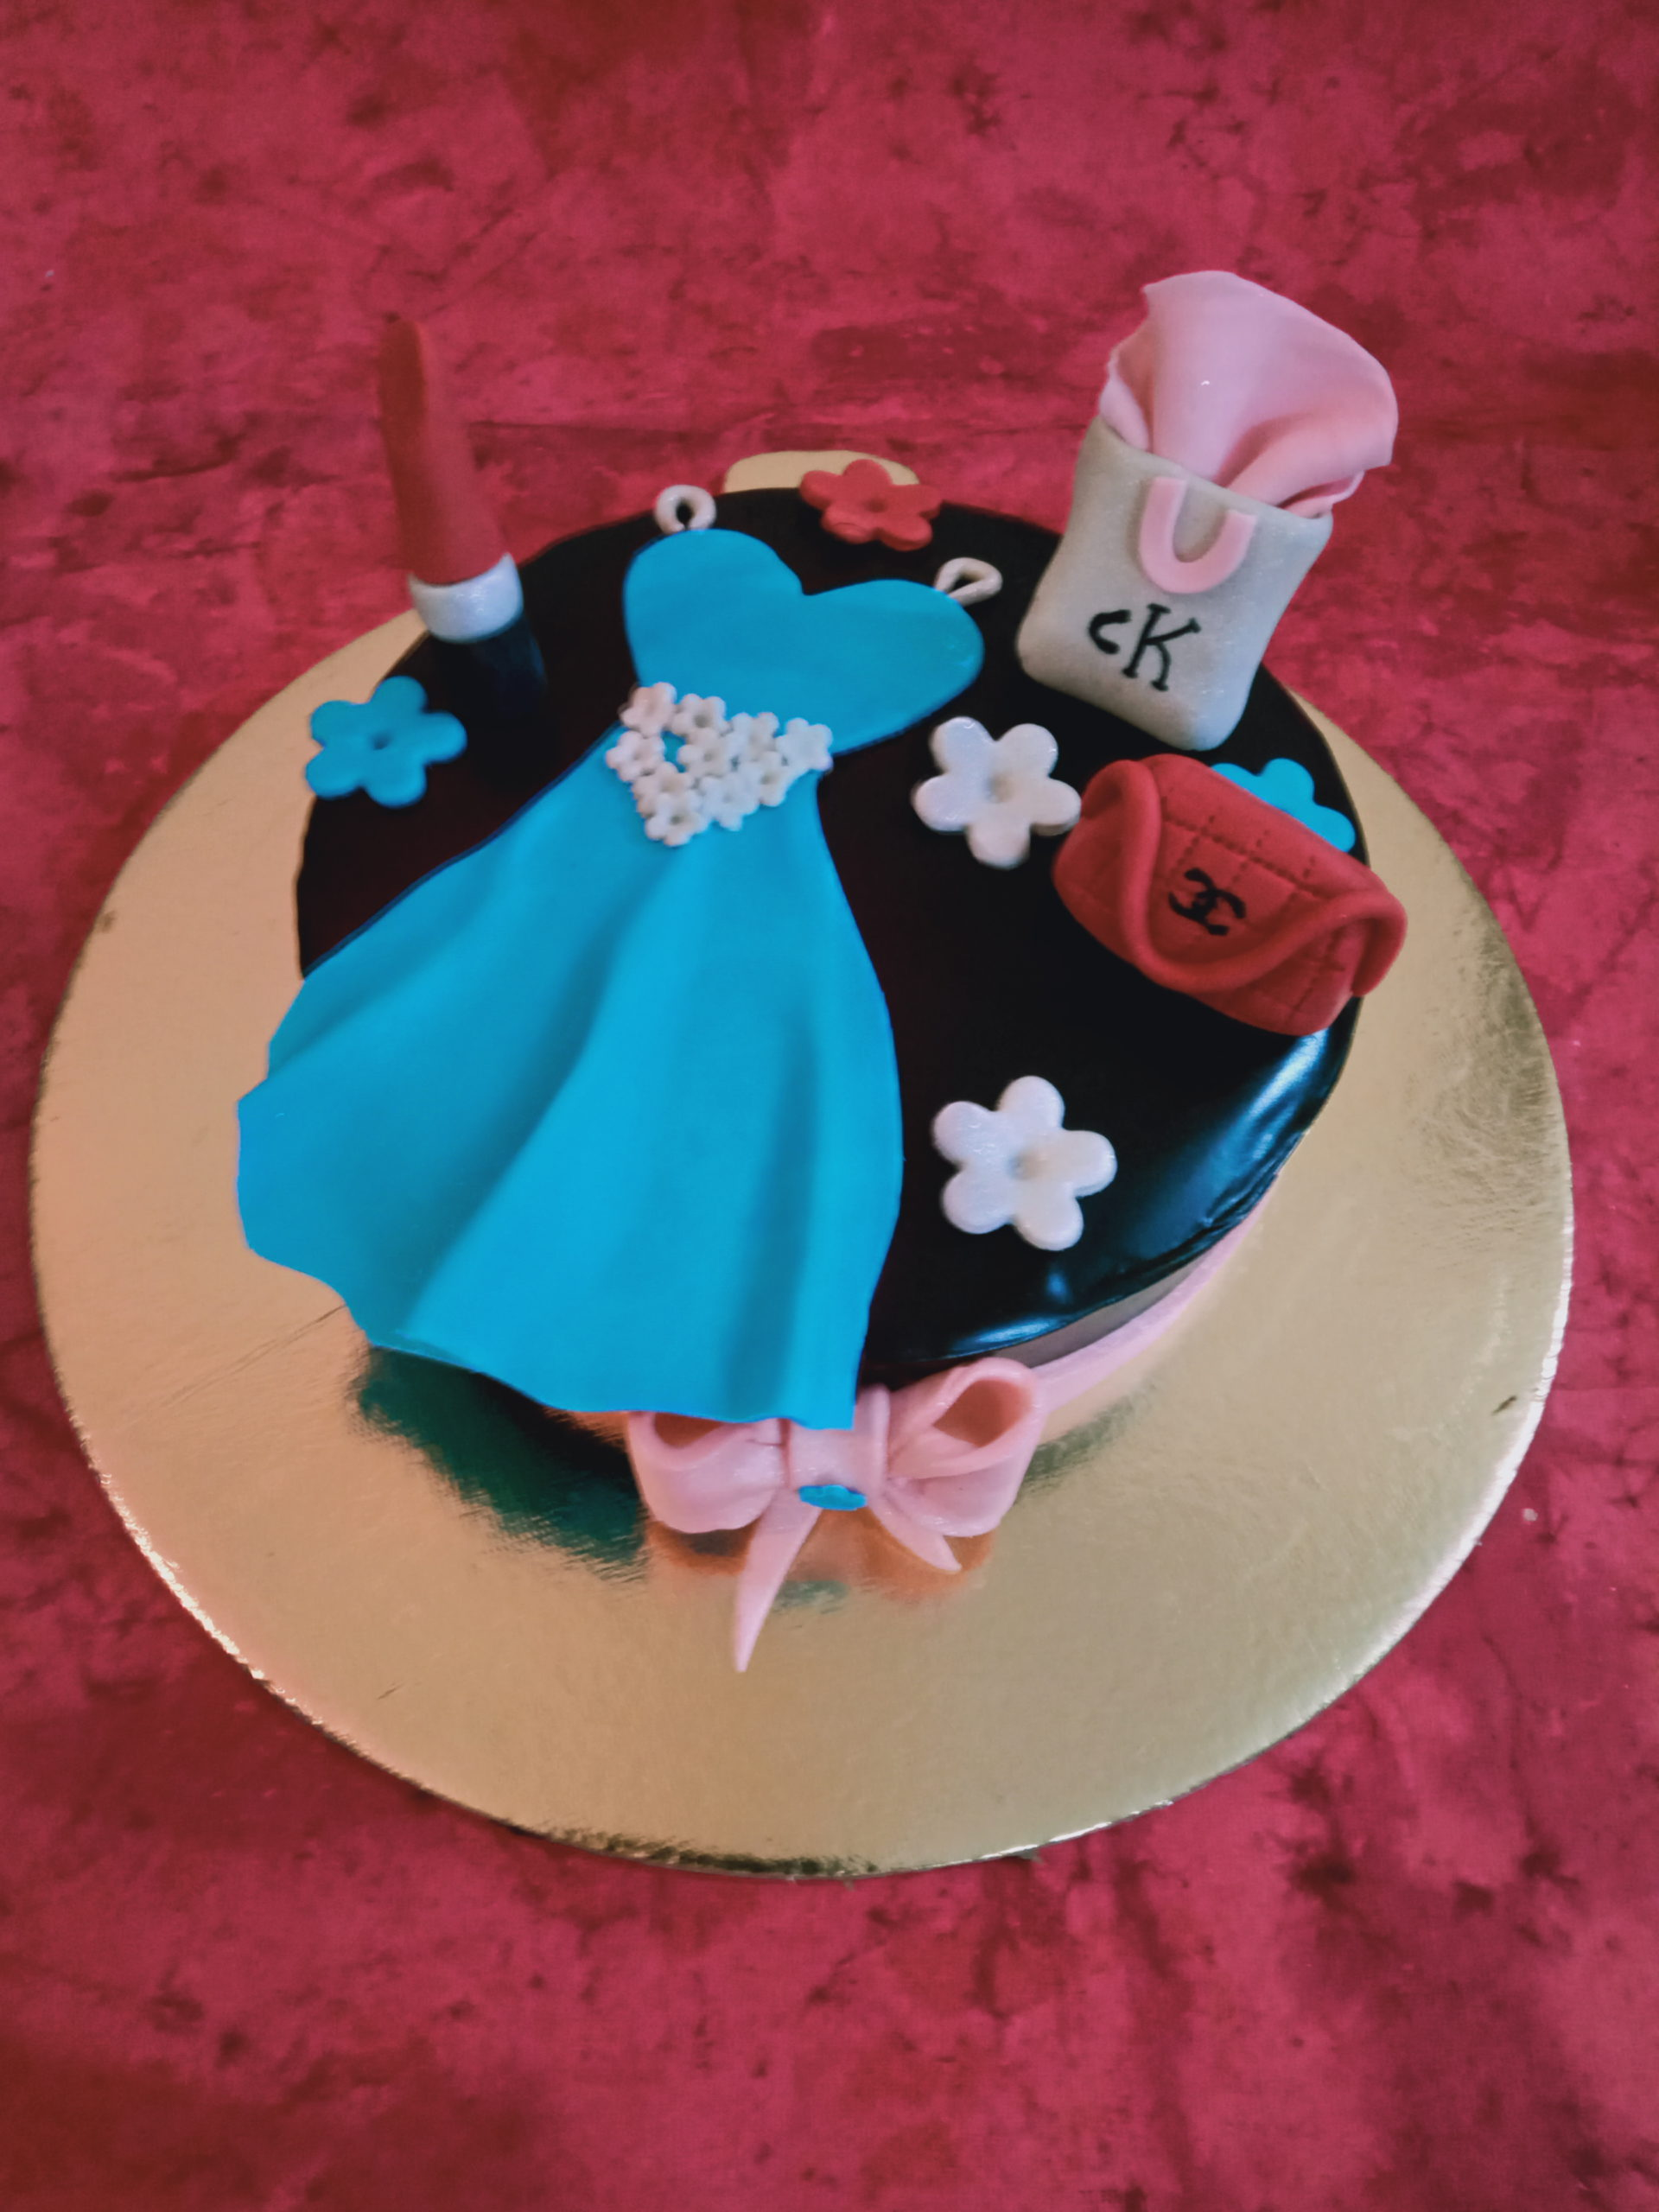 Bride To Be Cake Designs, Images, Price Near Me